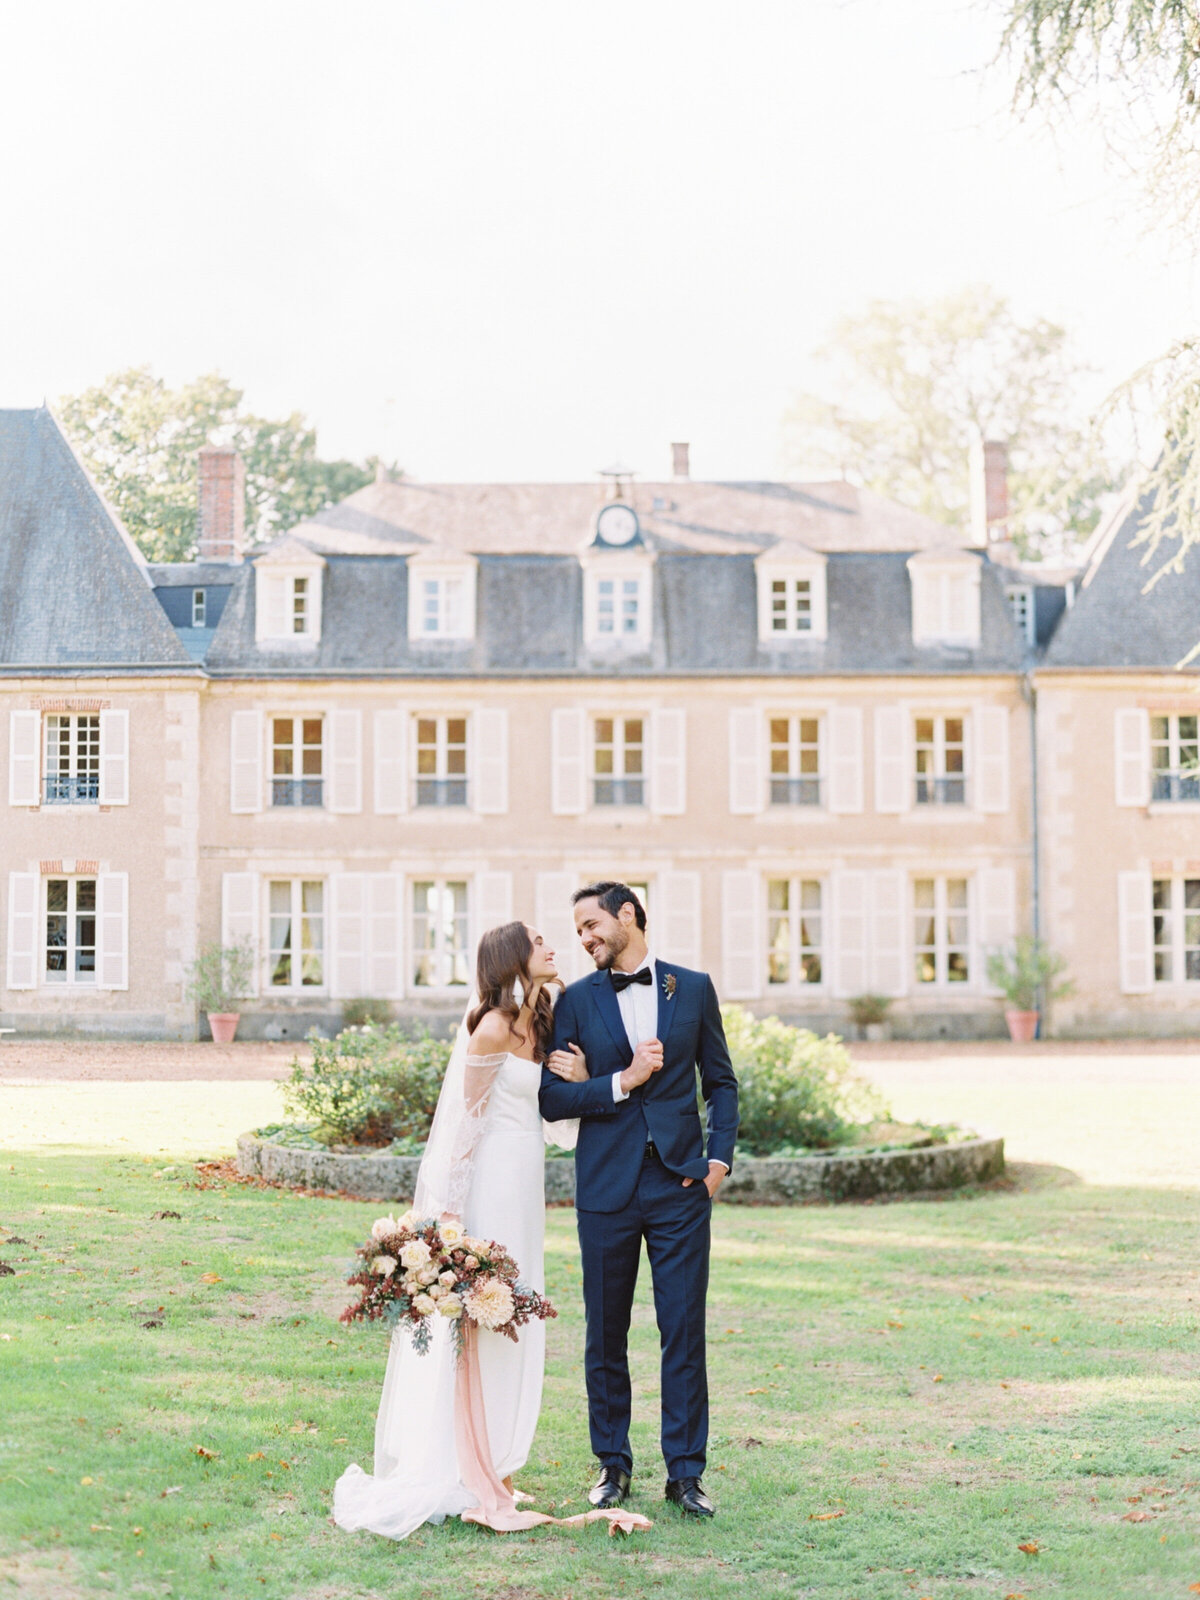 chateau-bouthonvilliers-wedding-paris-wedding-photographer-mackenzie-reiter-photography-87